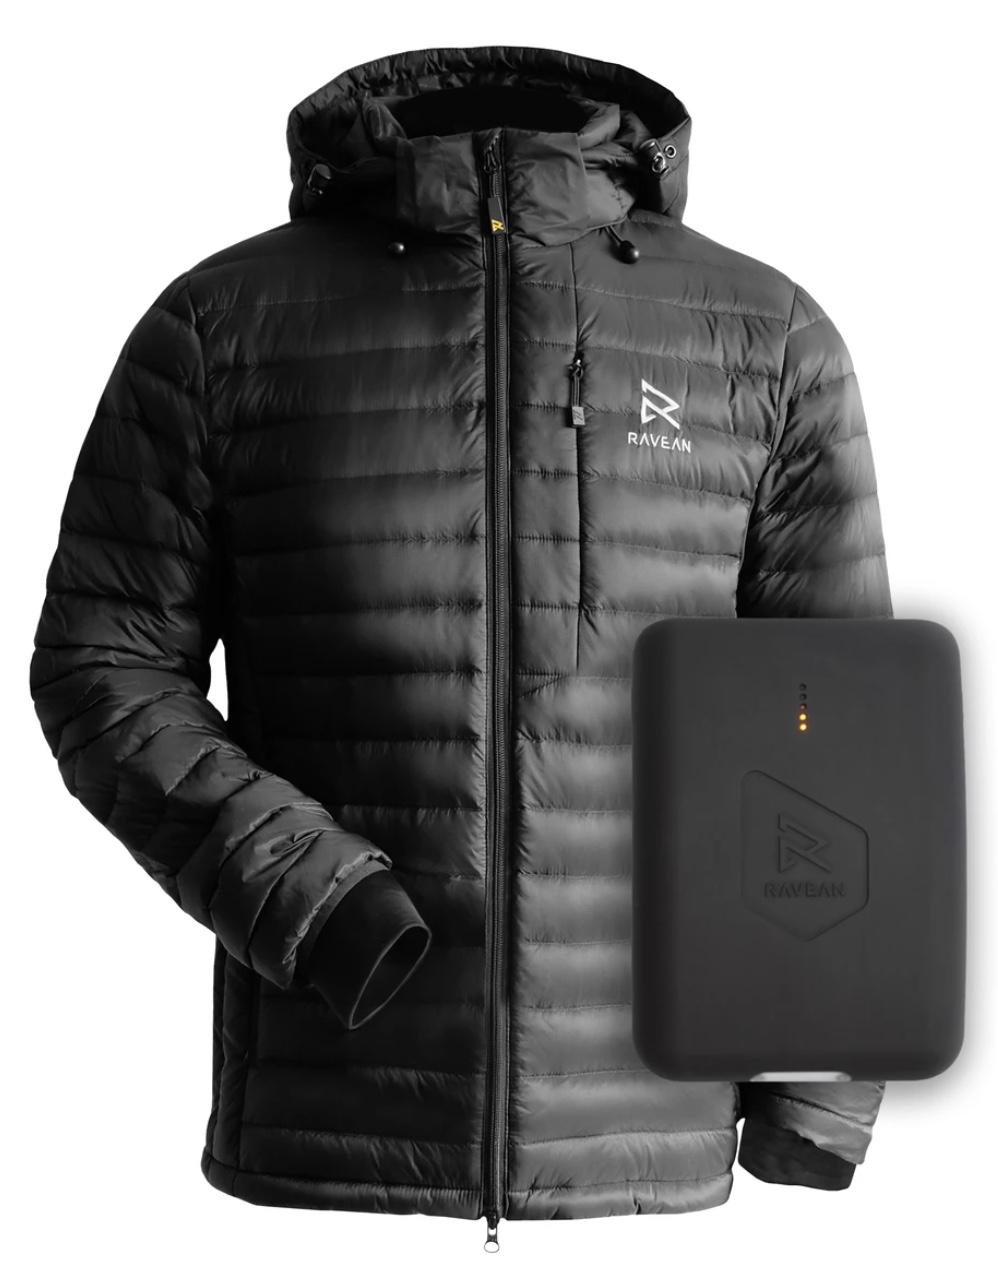 ravean heated jacket review